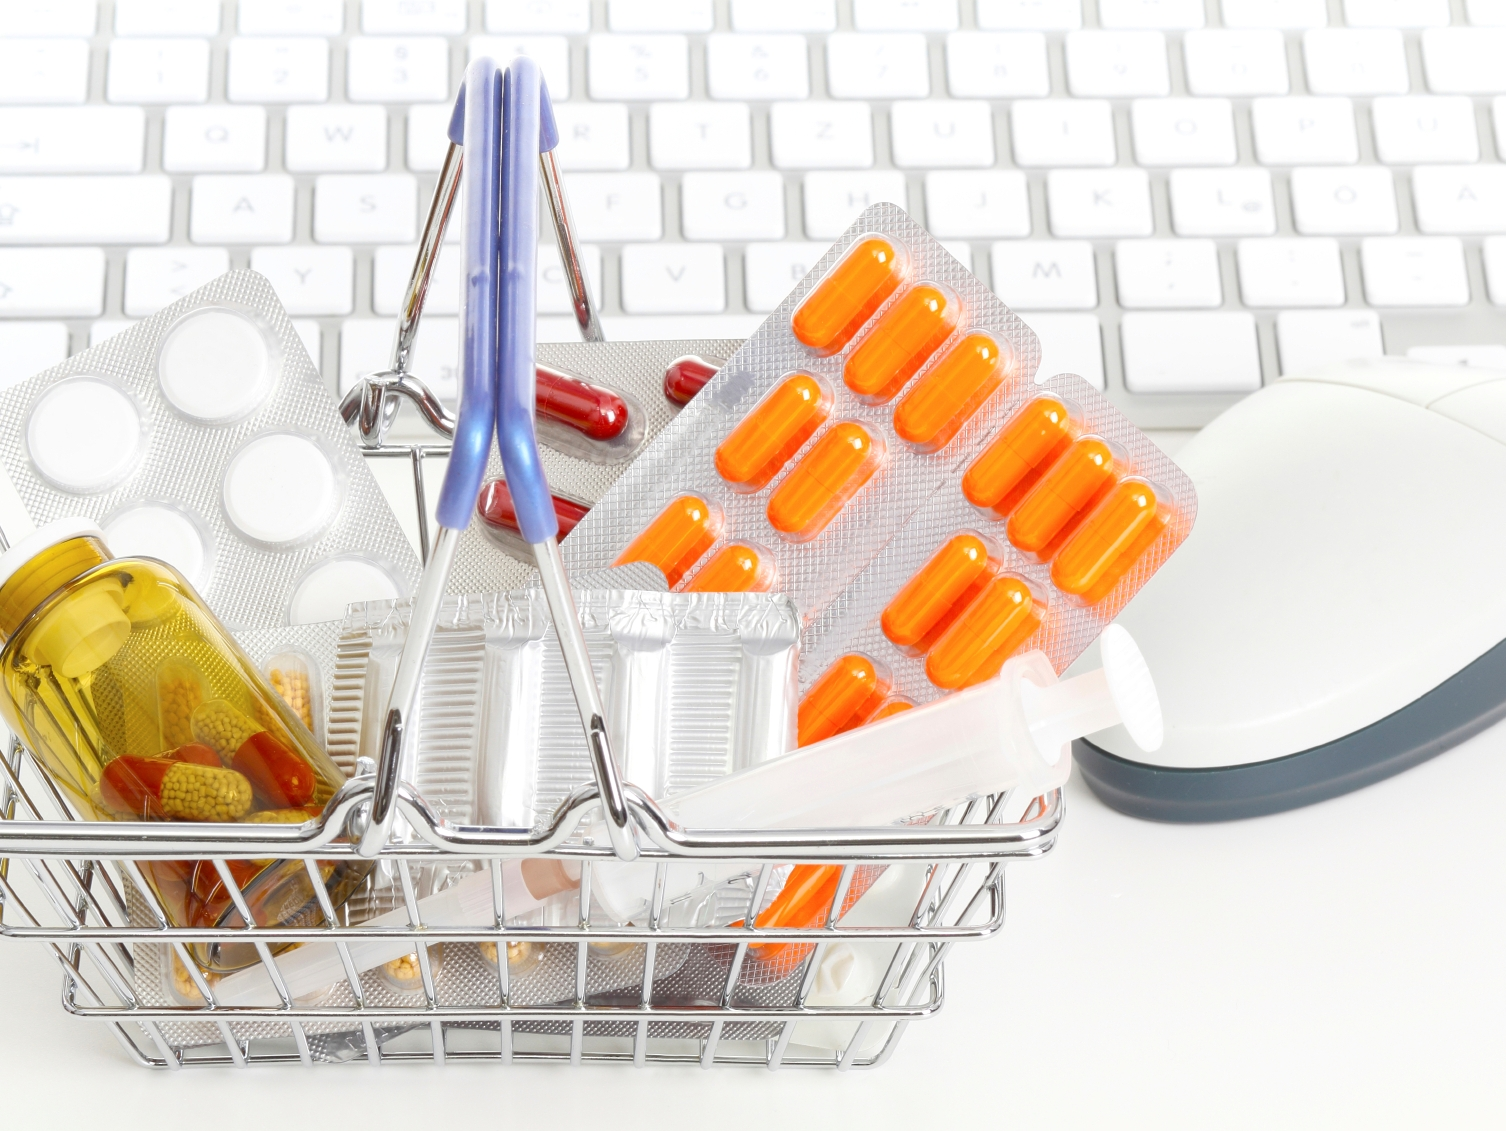 Online pharmacy, on-line chemist's shop